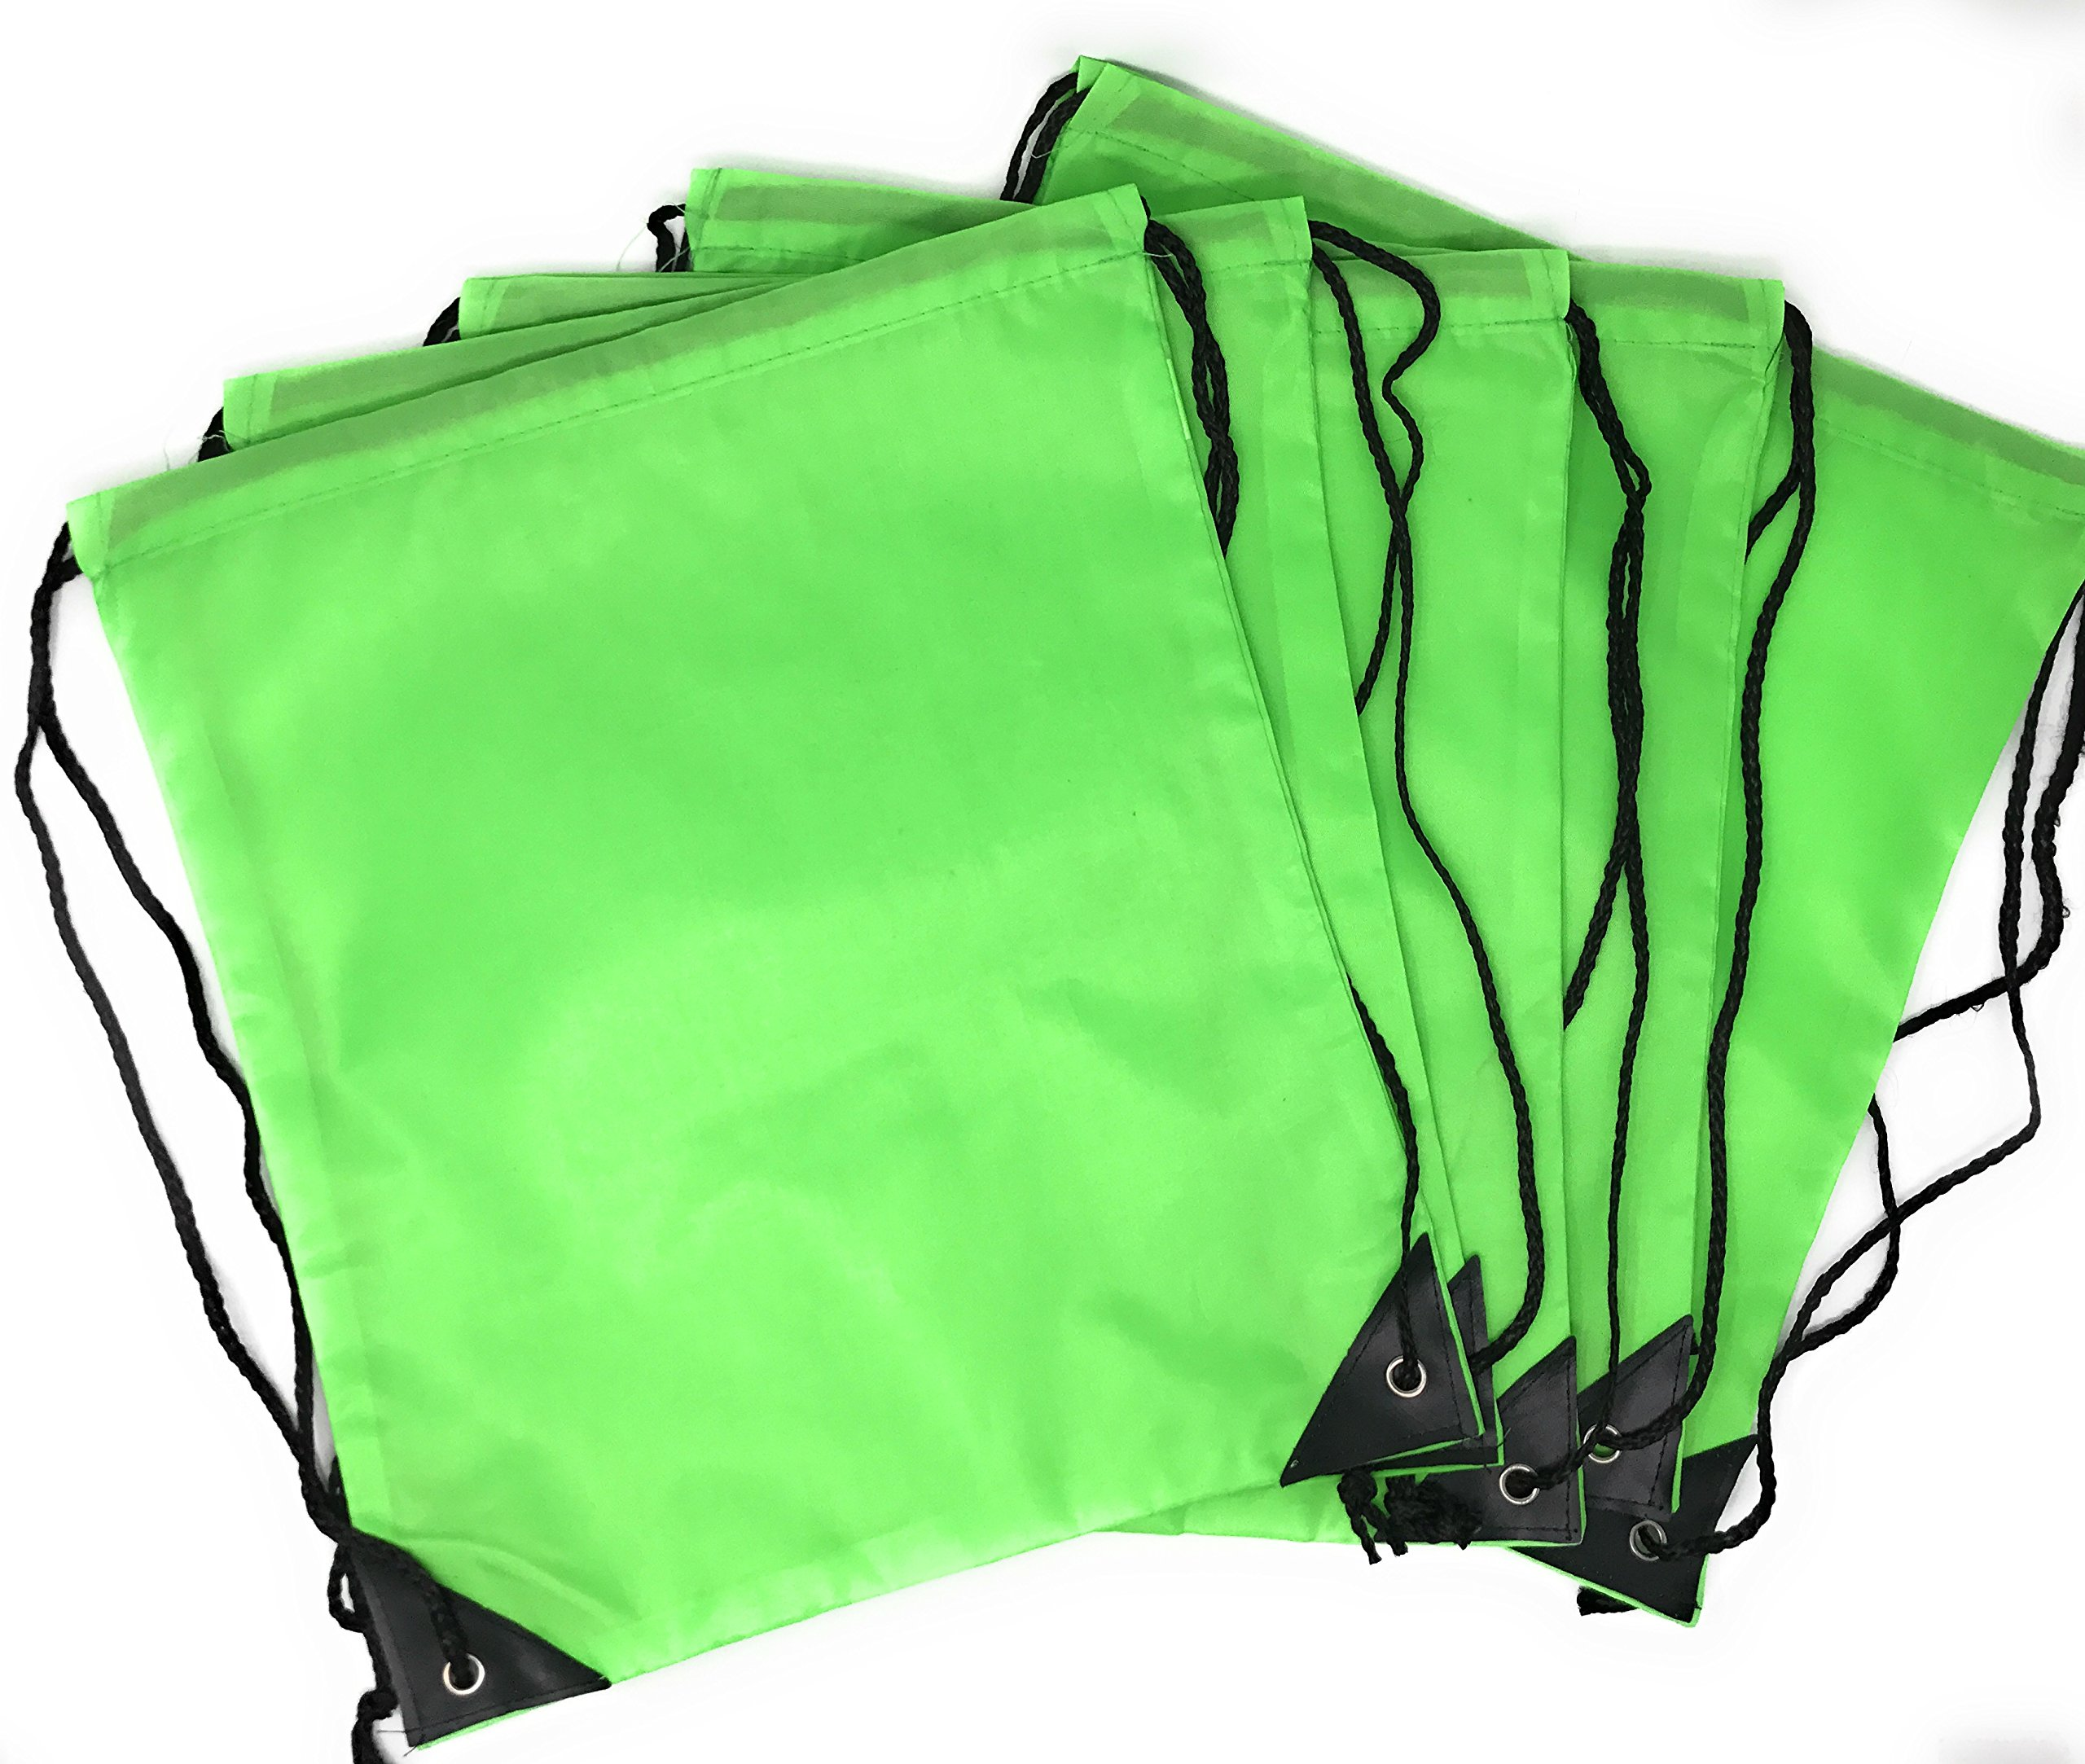 20 x Bulk Drawstring Backpack - Sports Bag Cinch Sack (Green)